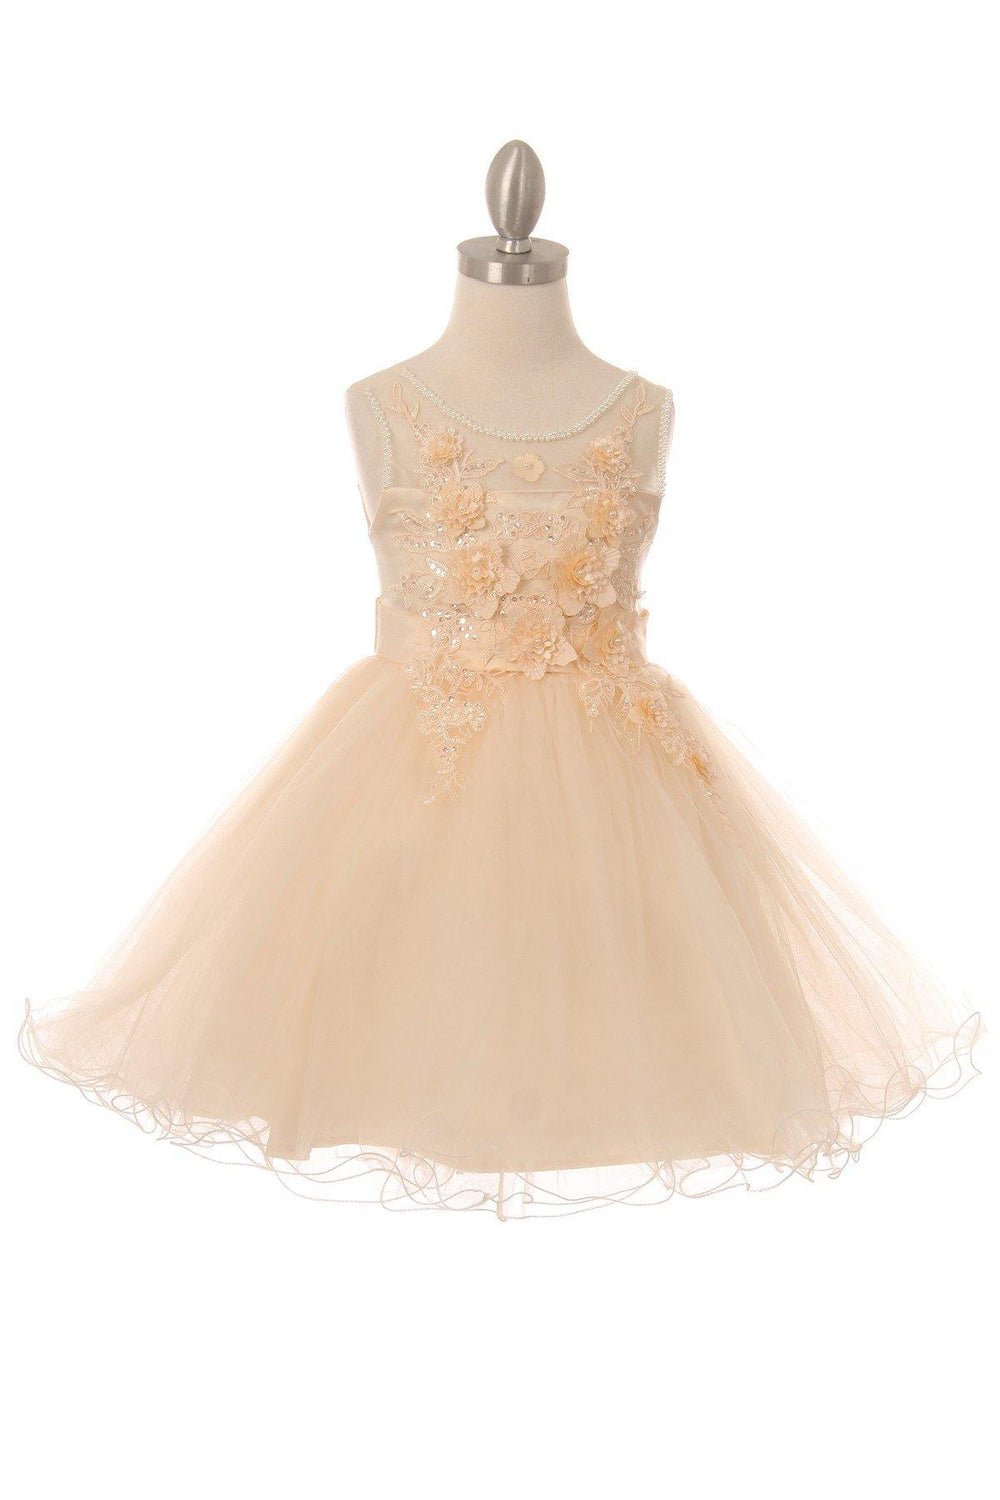 Sleeveless Embellished Short Party Flower Girls Dress - The Dress Outlet Champagne